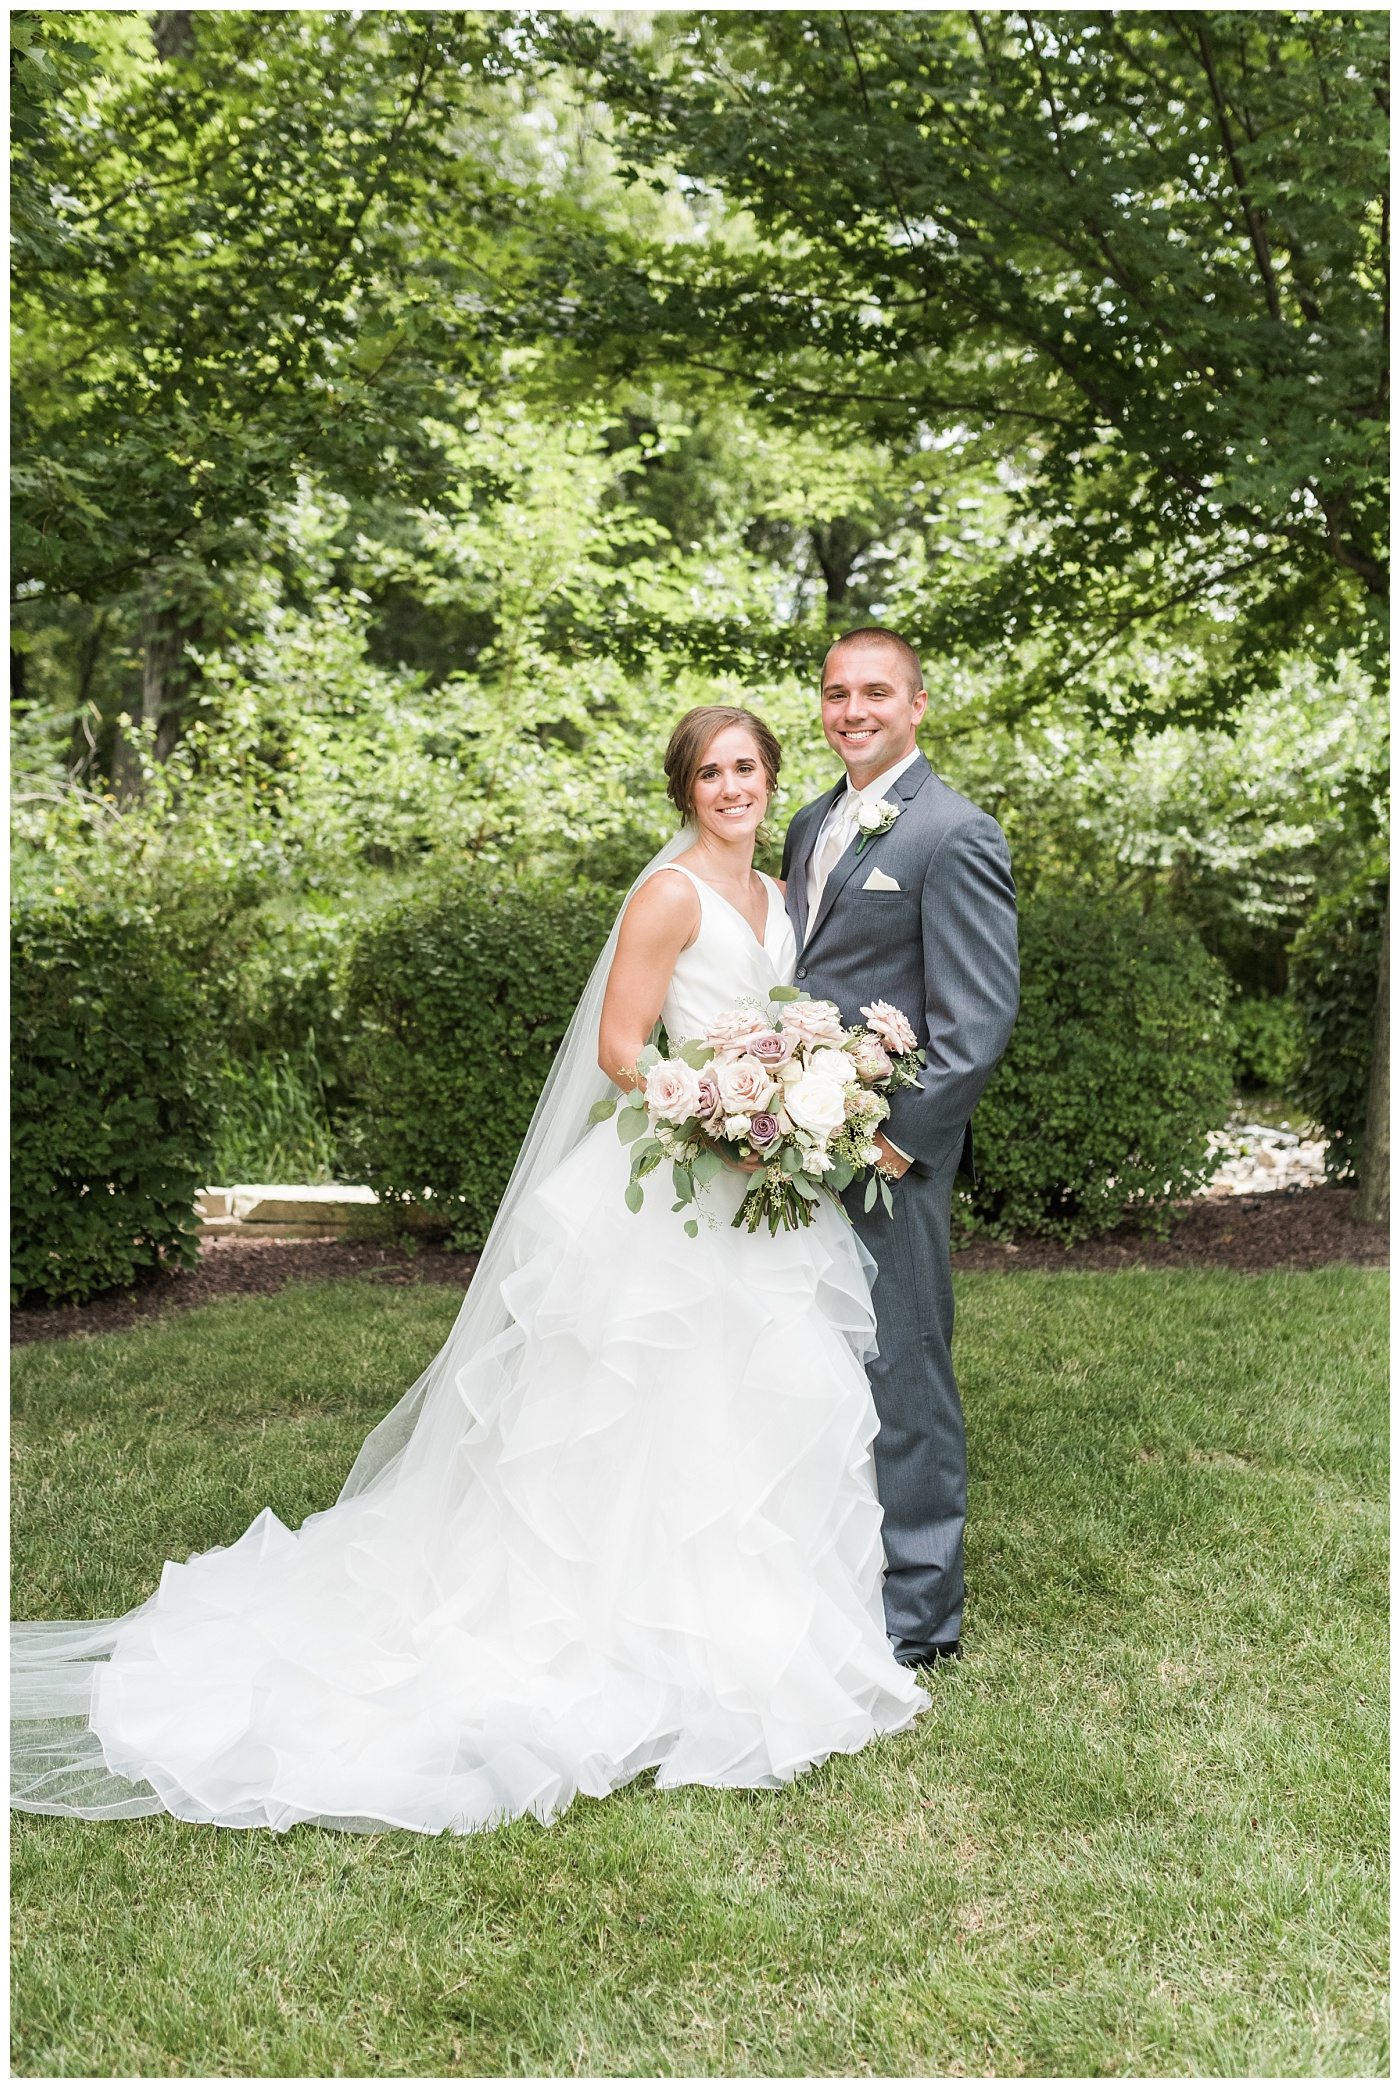 Stephanie Marie Photography Newman Catholic Center Ceremony Bella Sala Reception Tiffin Iowa City Wedding Photographer Chelsey Justin Meyers_0017-1.jpg